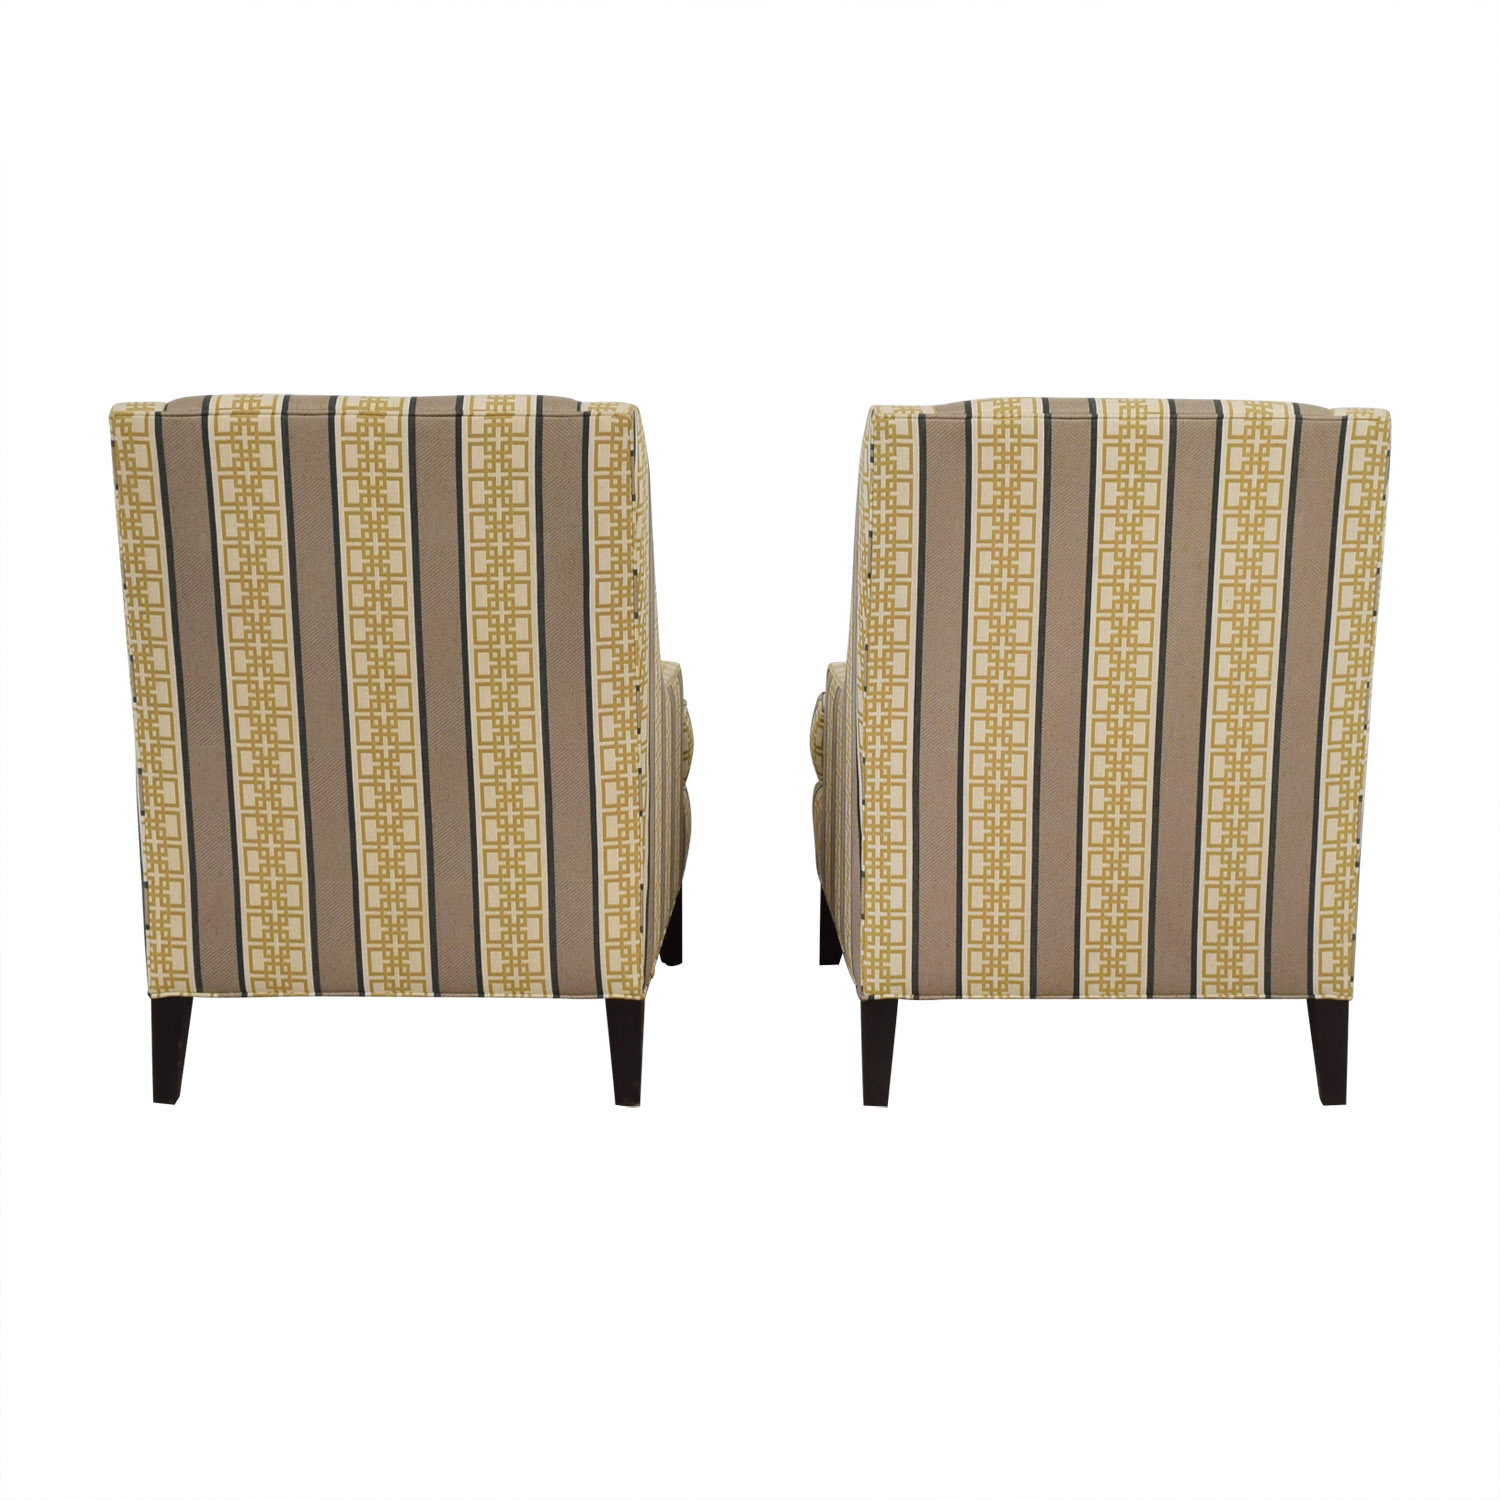 Ethan Allen Emerson Multi-Colored Geometric Pattern Accent Chairs Ethan Allen